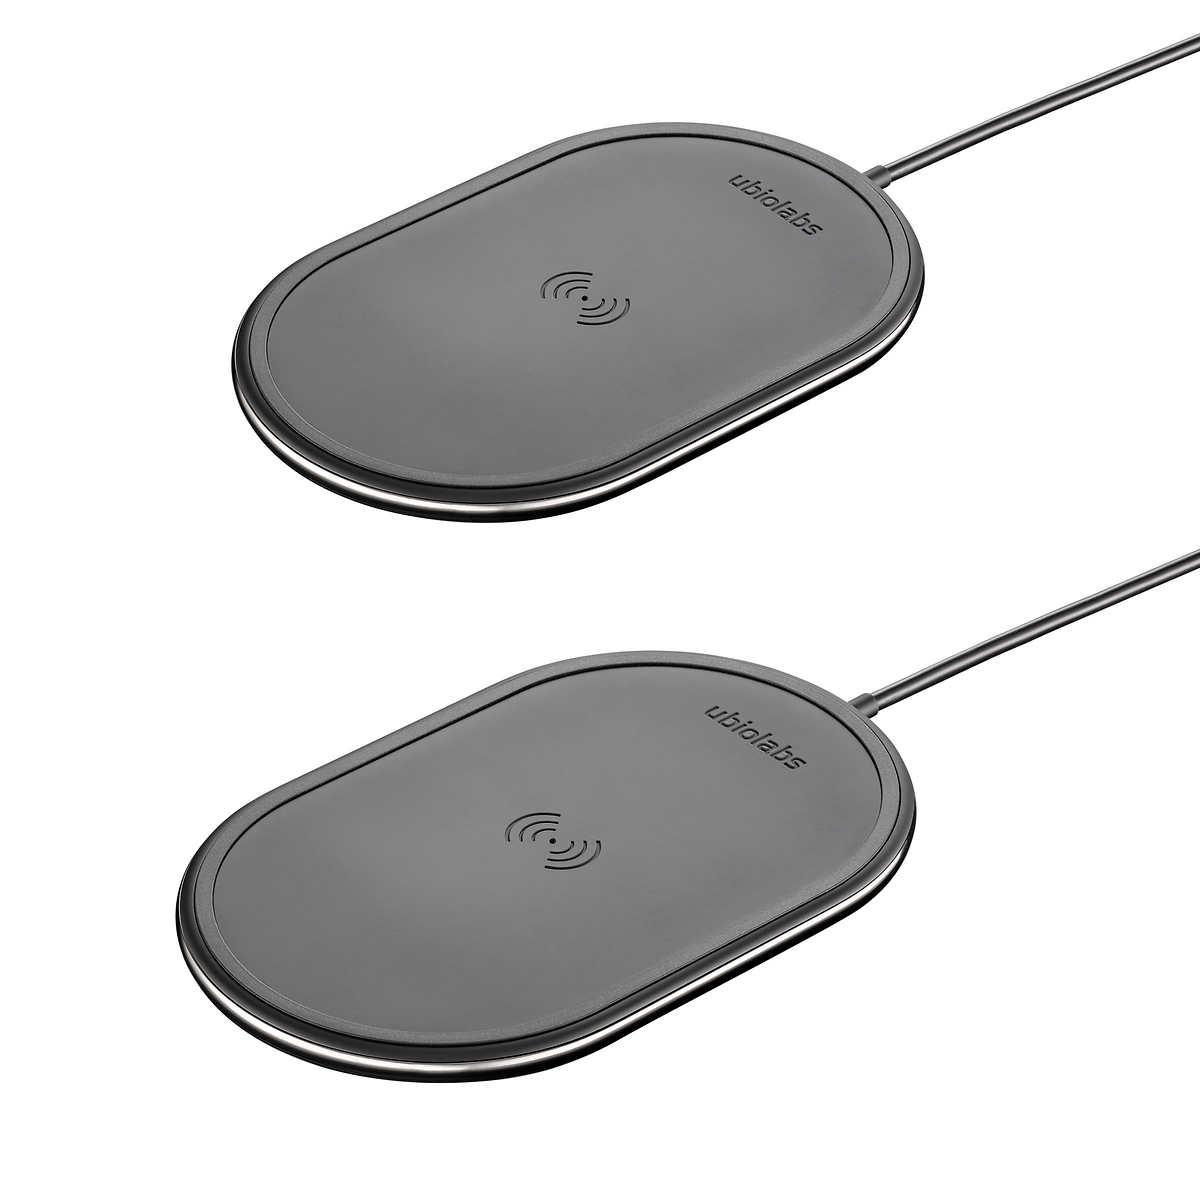 Ubio Labs 10W Qi Wireless Charging Pad, 2-pack